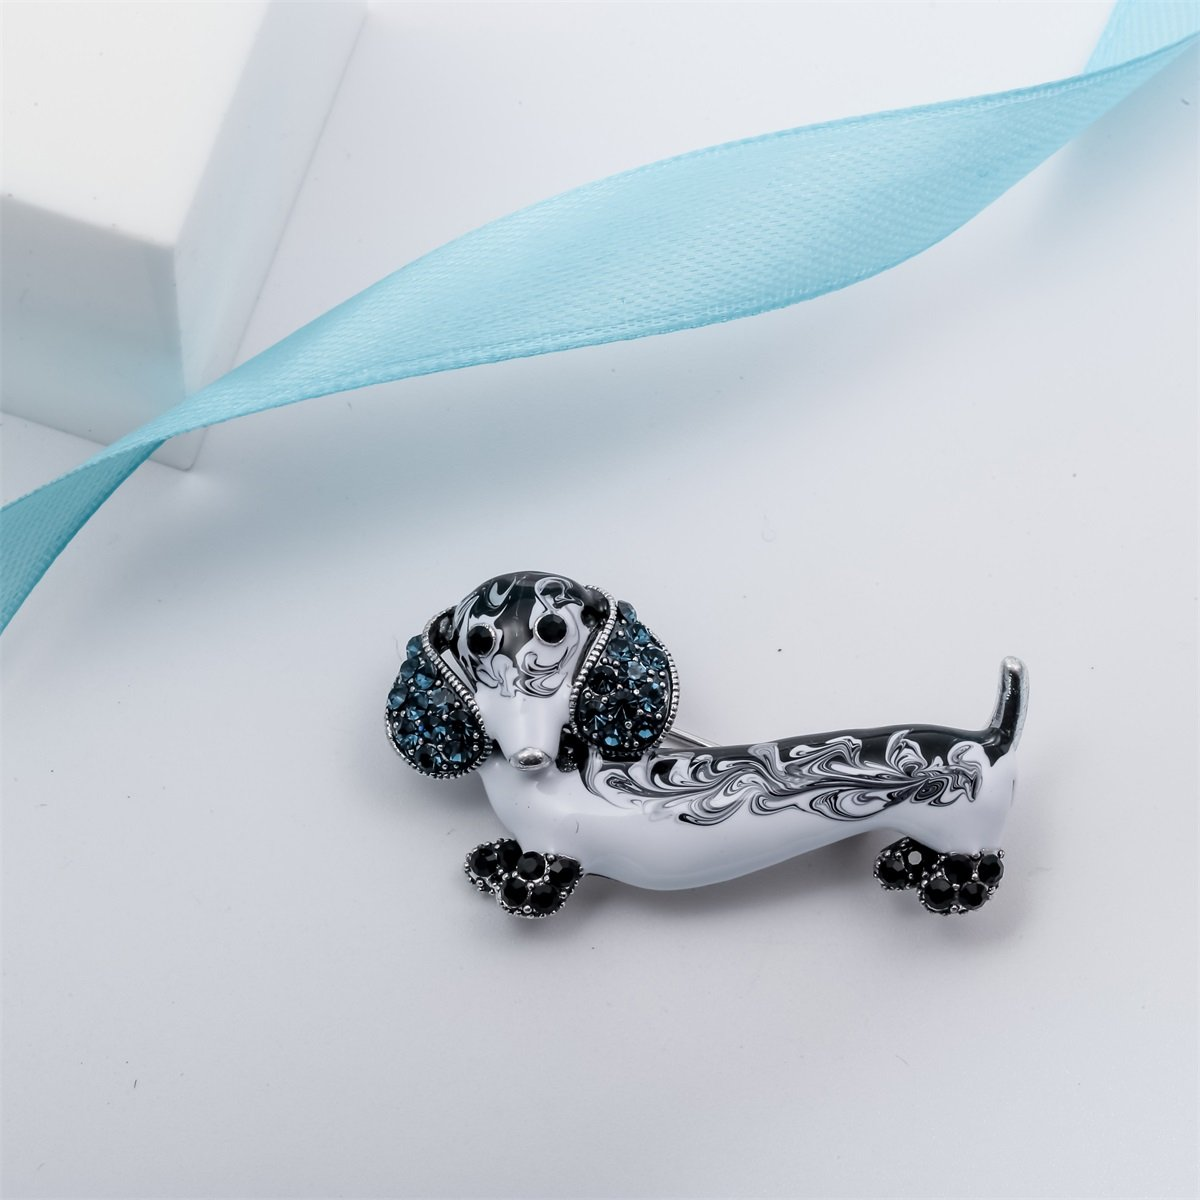 Szxc Jewelry Crystal Sparkly Dachshund Dog Puppy Animal Collection Accessories Brooch Pin Gift Women by Szxc Jewelry (Image #2)